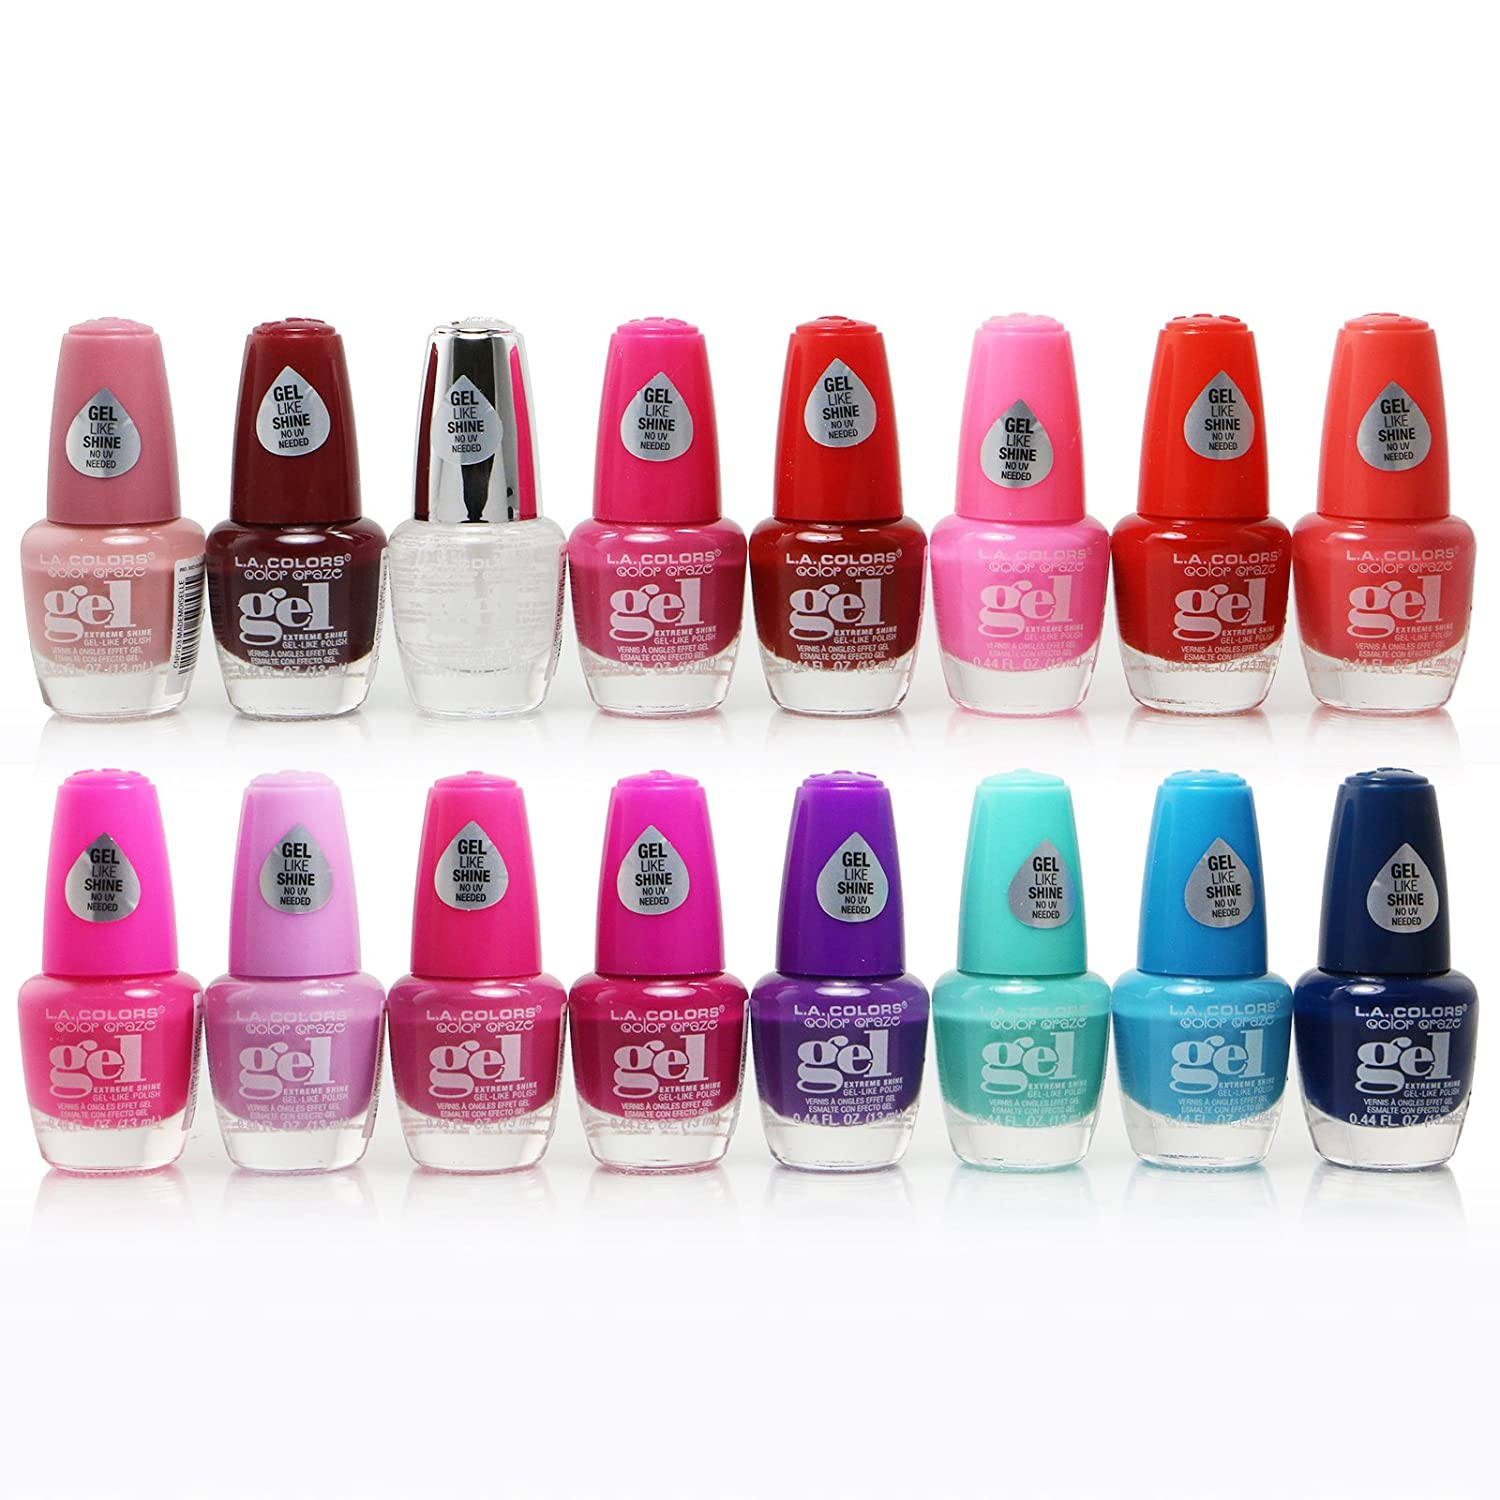 Amazon.com : 16pc L.A. Colors Extreme Shine Gel Nail Polish No UV ...